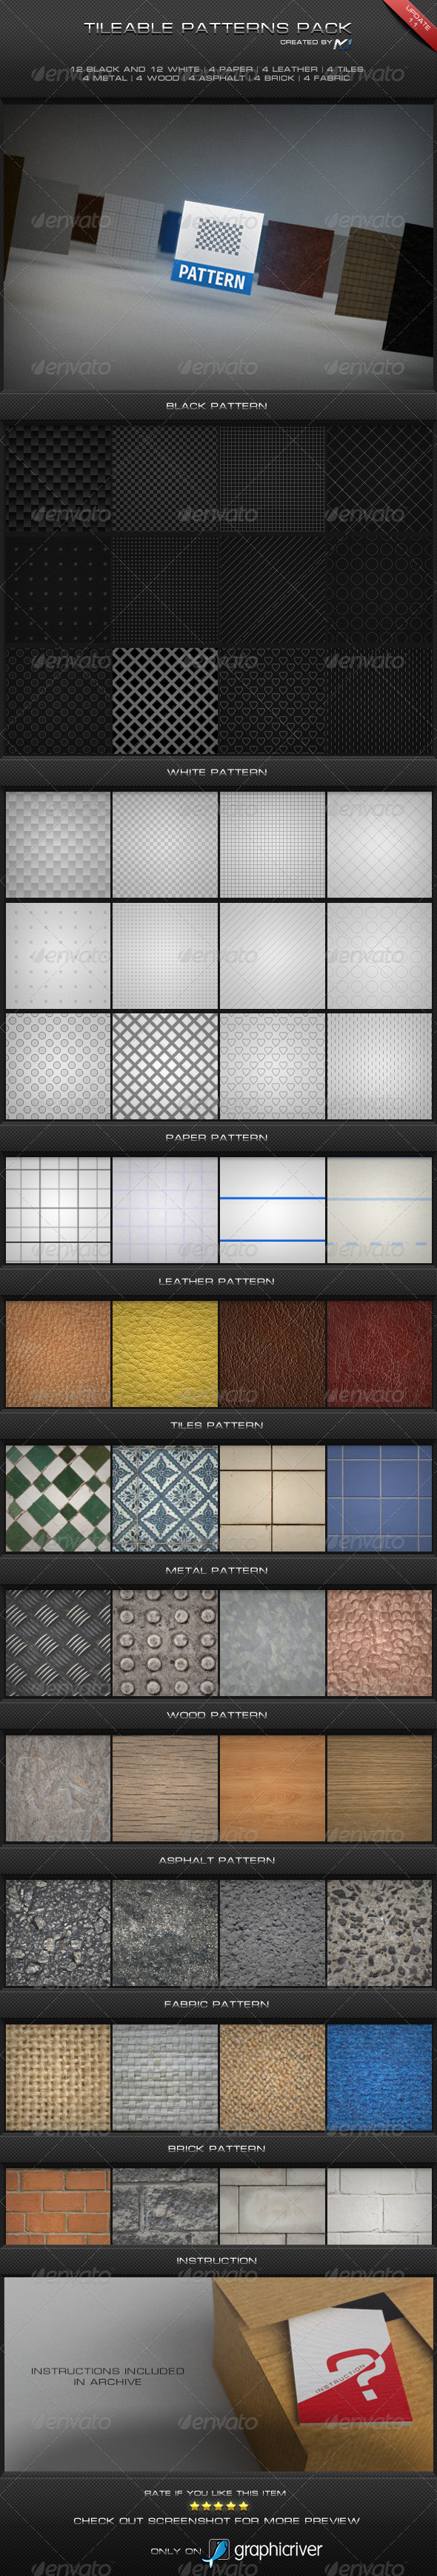 Tileable Patterns Pack - Photoshop Add-ons